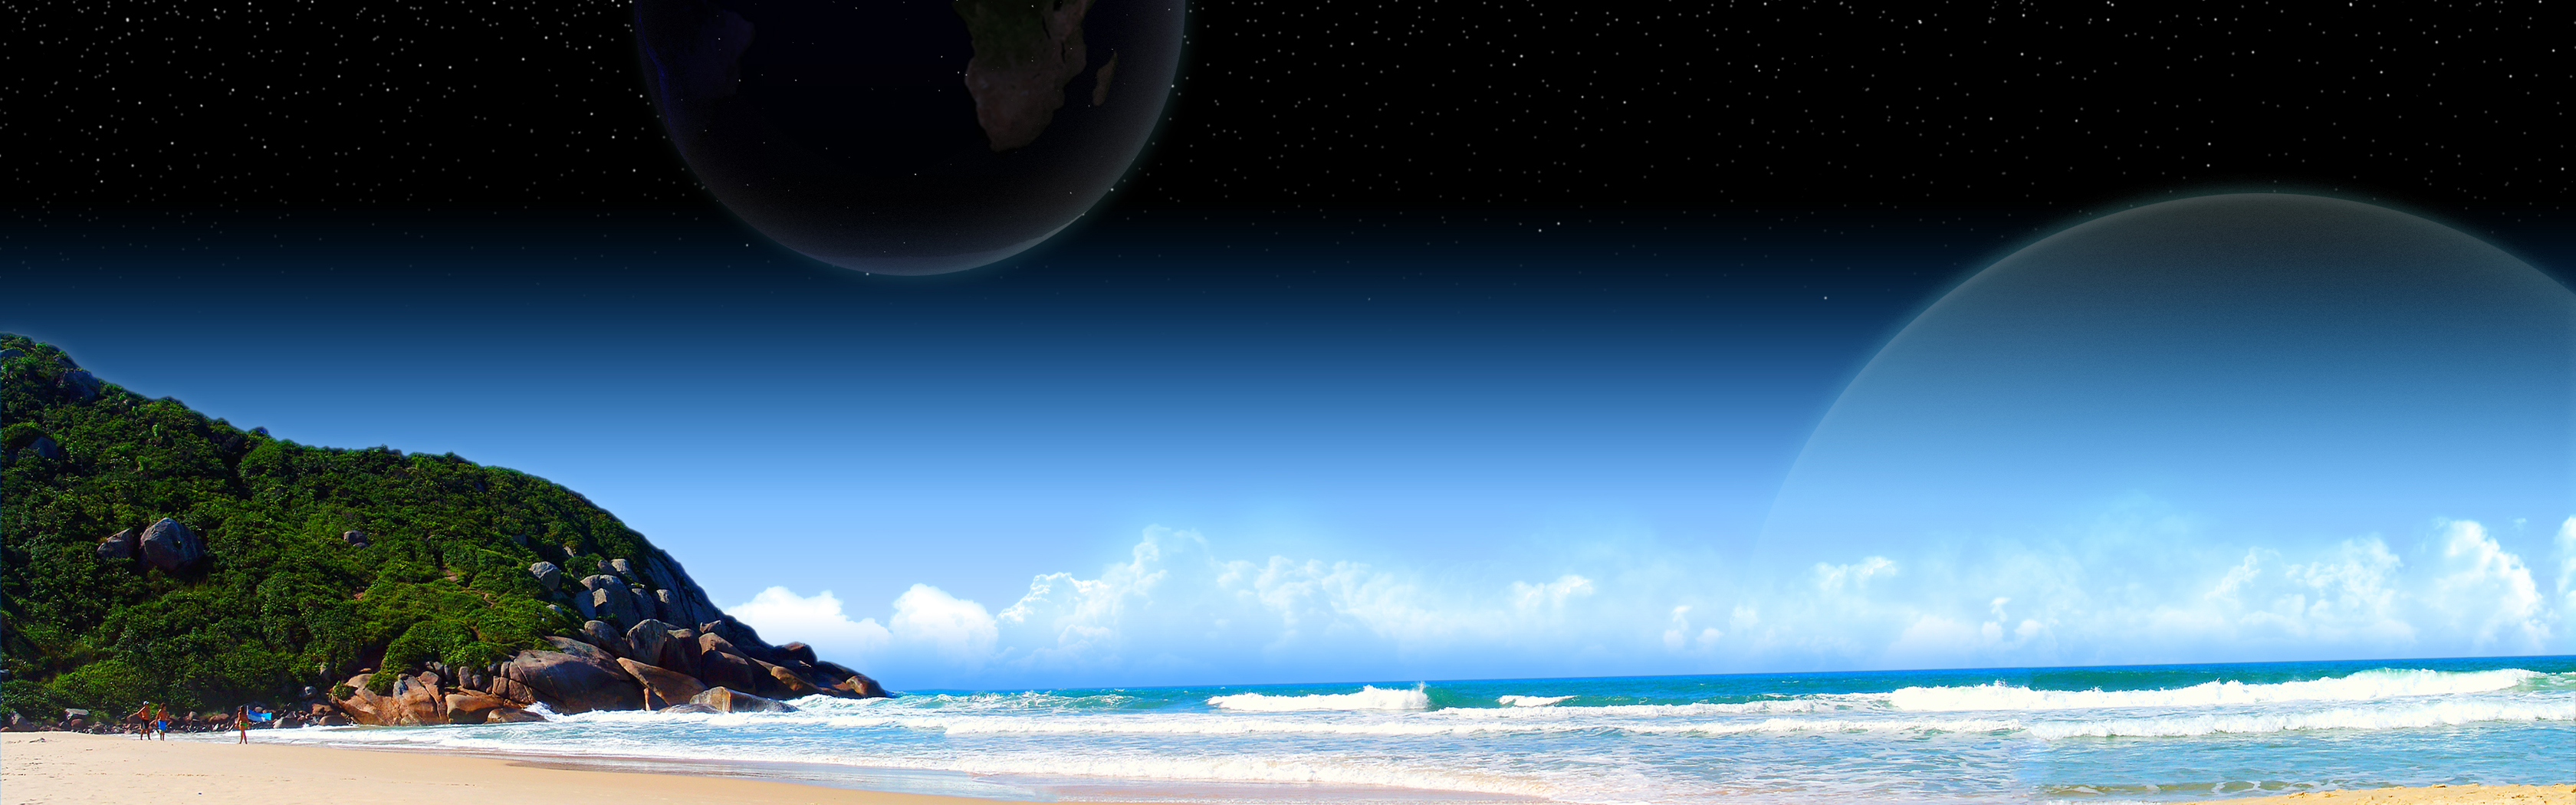 Earth Computer Wallpapers, Desktop Backgrounds 3360x1050 Id: 77371